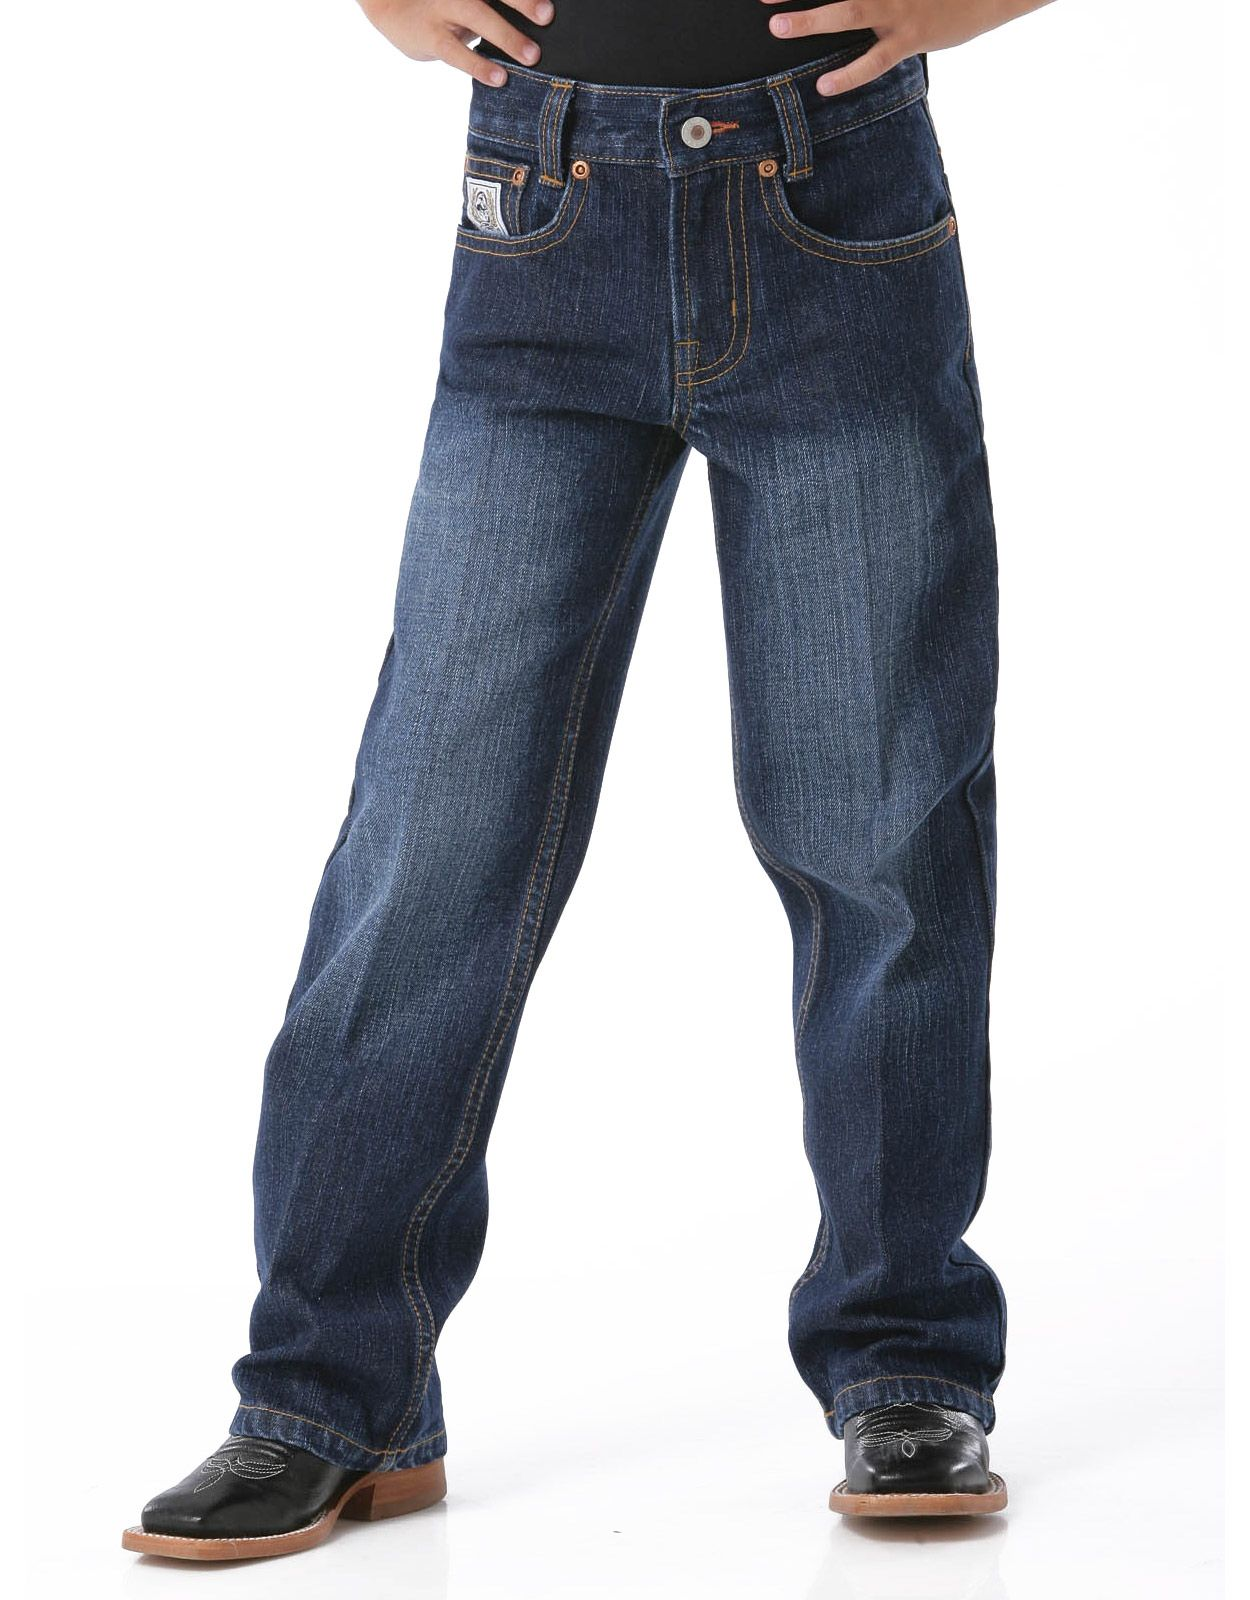 Cinch Boy's White Label Mid Rise Relaxed Fit Straight Leg Jeans (Sizes 1T-4T) - Dark Stonewash